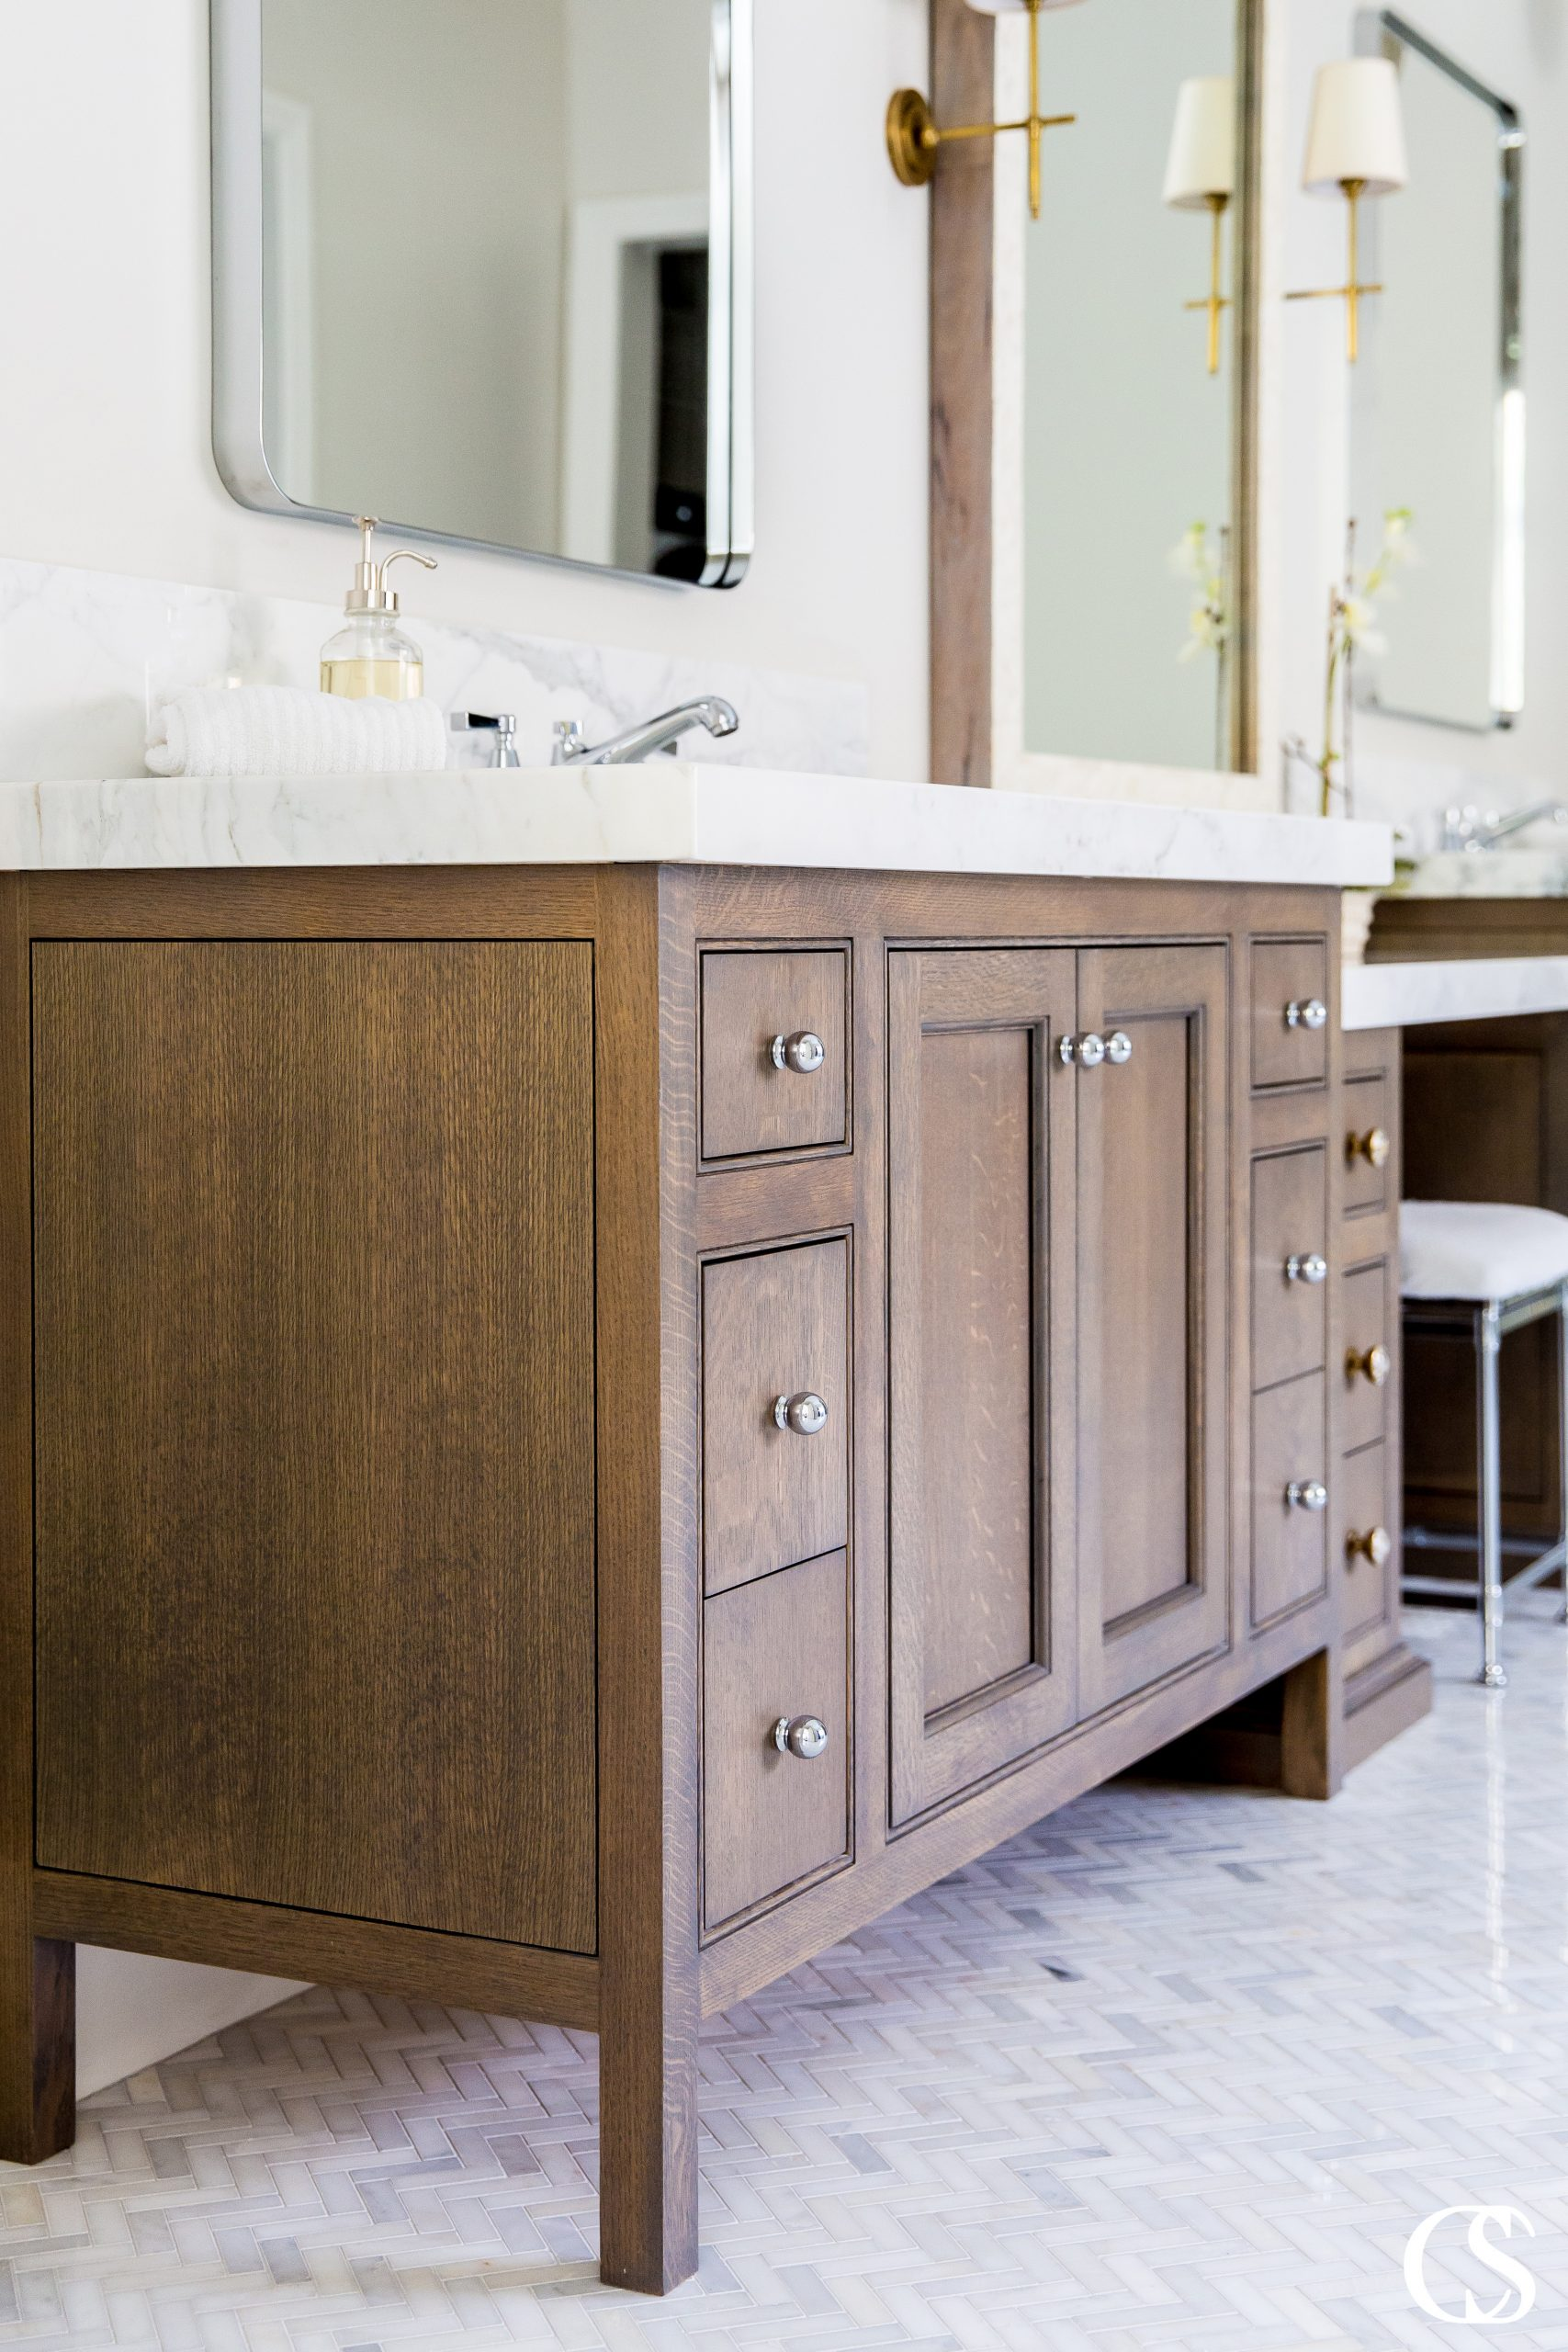 See the way the end piece of this custom cabinet design for the bathroom mimics the lines on the front? It's the details that make custom cabinet designs for the bathroom so unique and special.